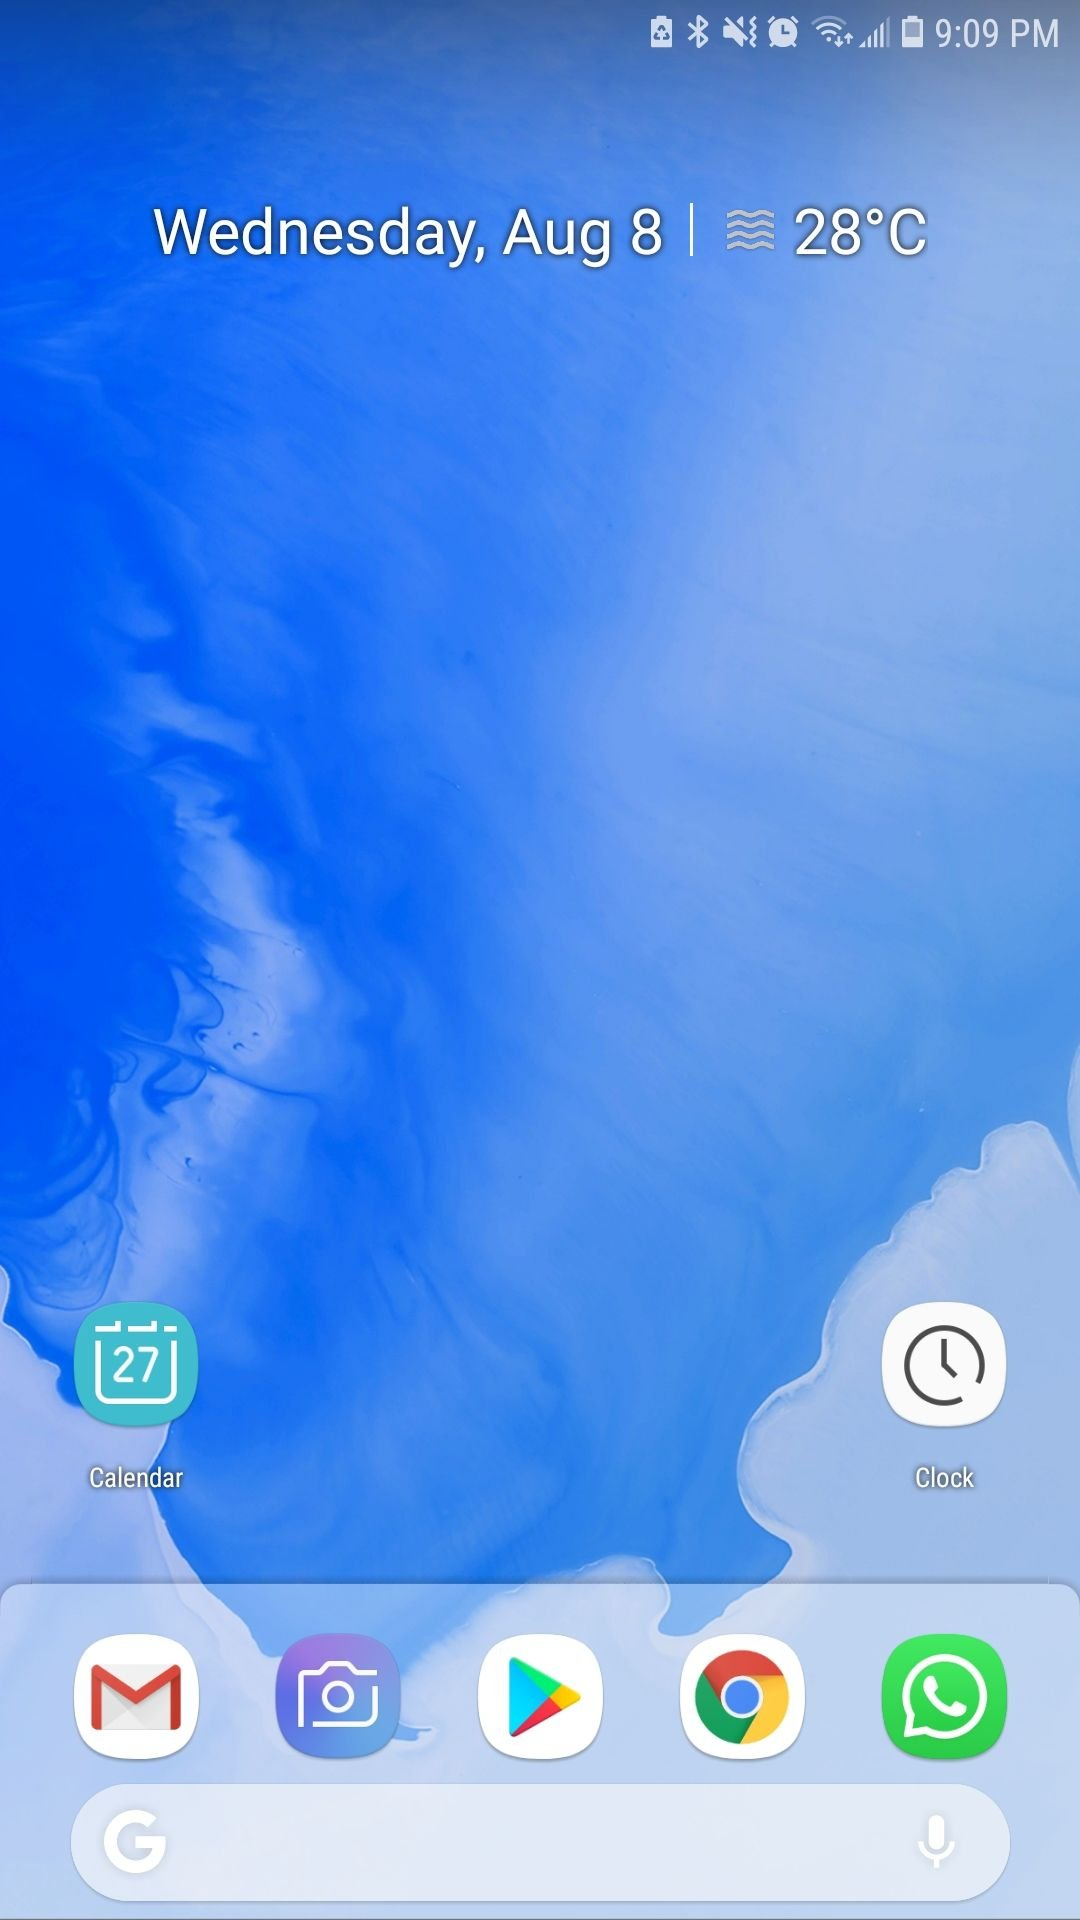 Download Android Pie Launcher APK – Pixel Launcher for Android Oreo / Nougat 10